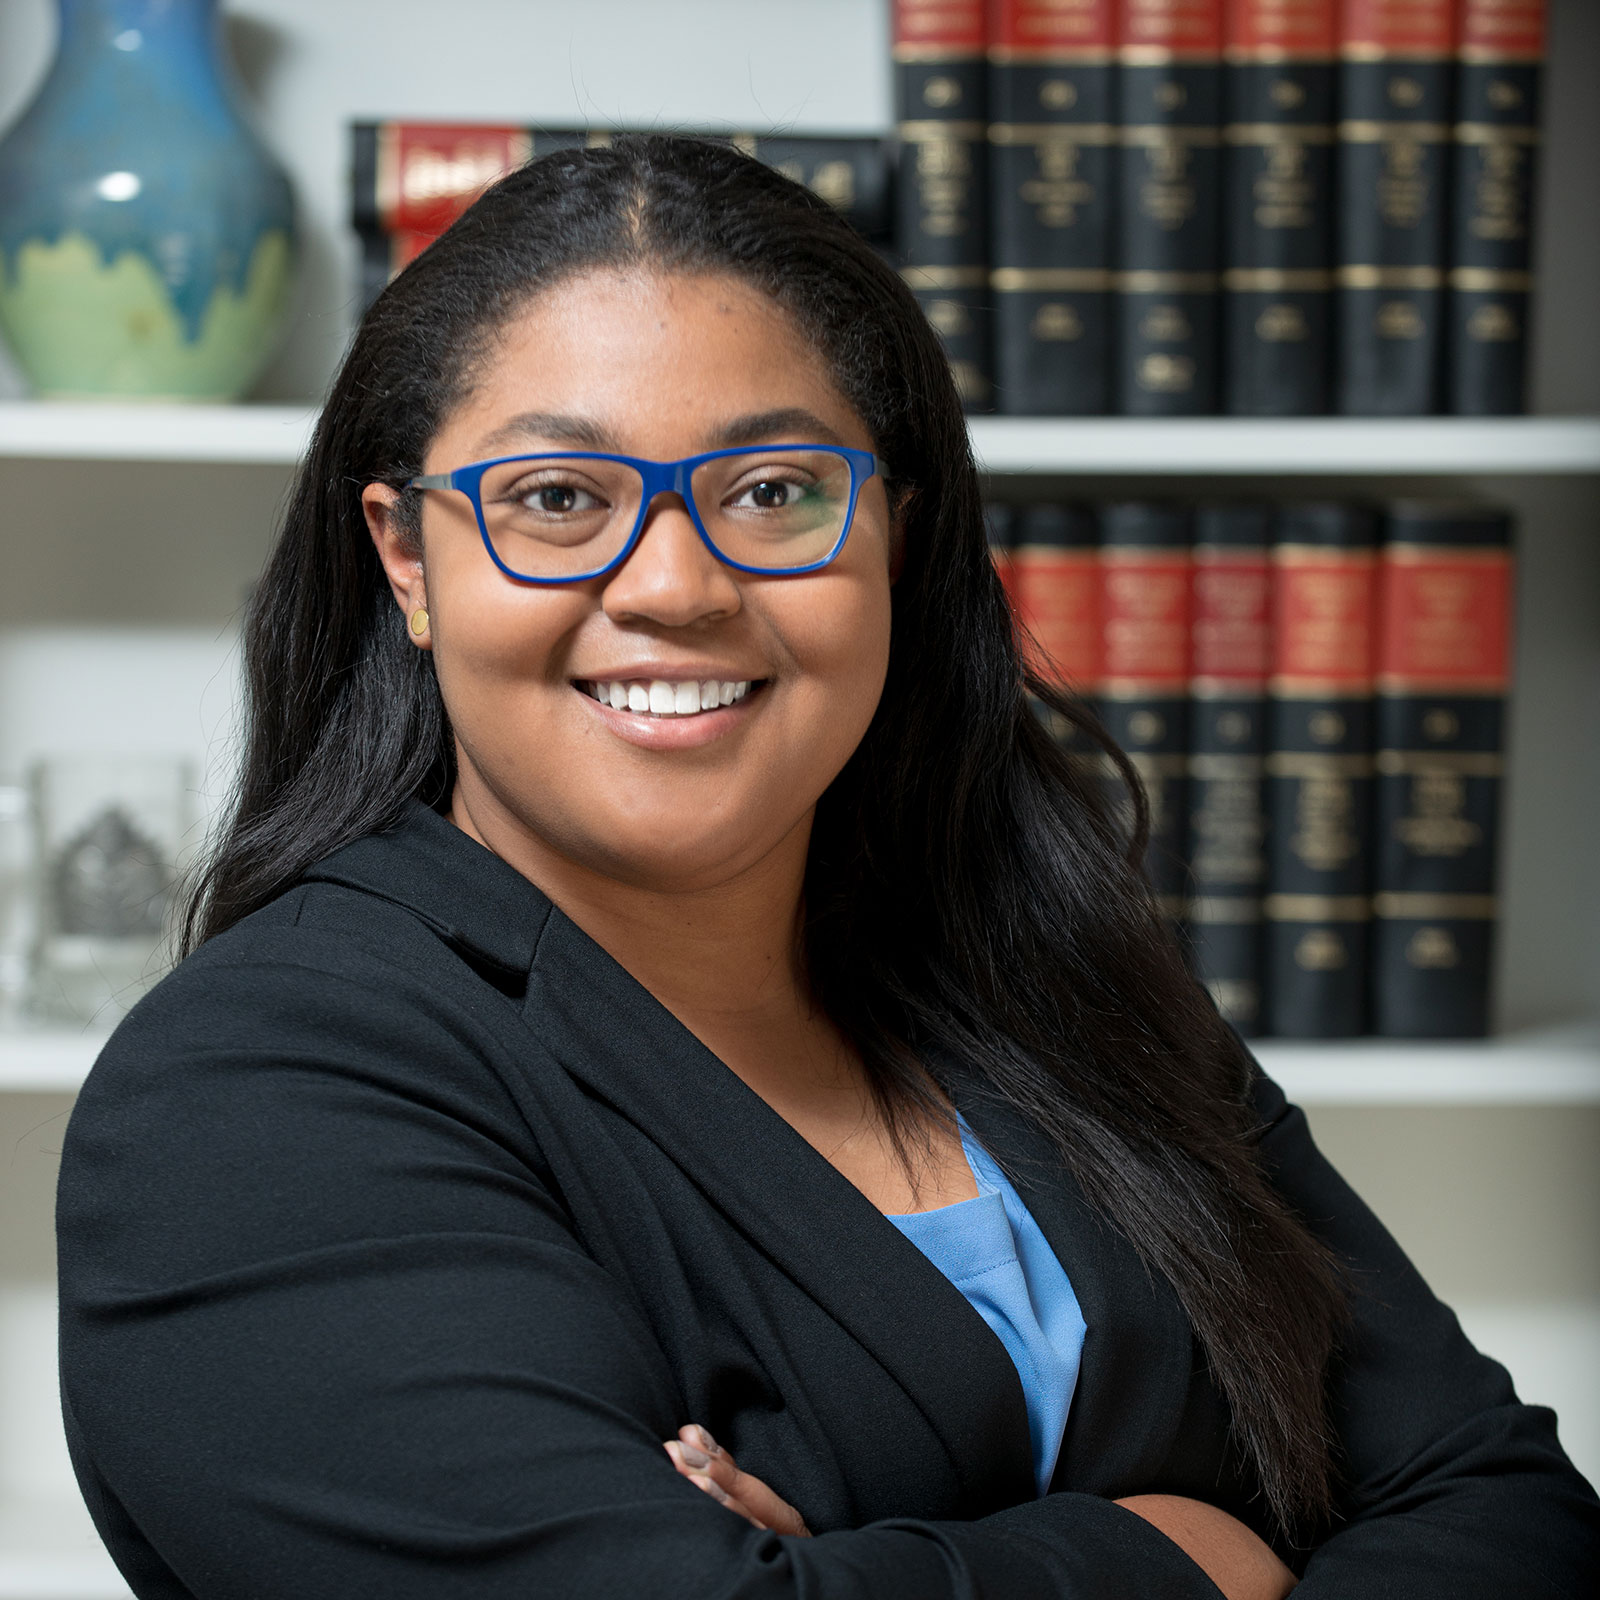 Head shot of Caela Abrams, a business attorney serving Fulton County and Atlanta, Georgia.